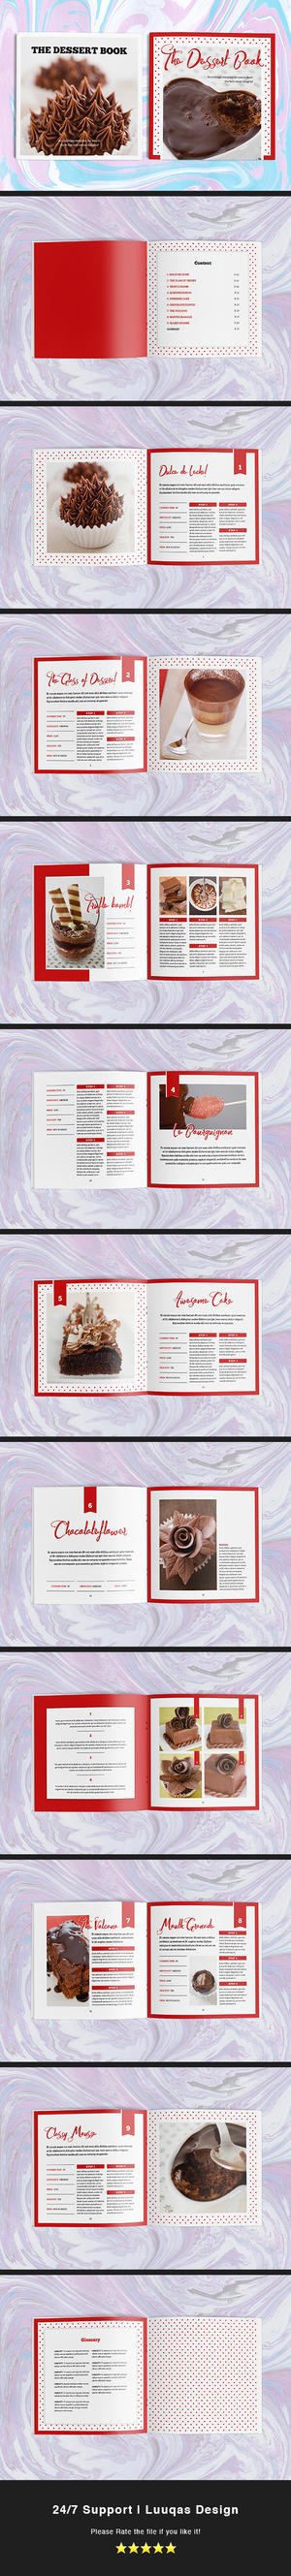 The Dessert Book Indesign Template by luuqas